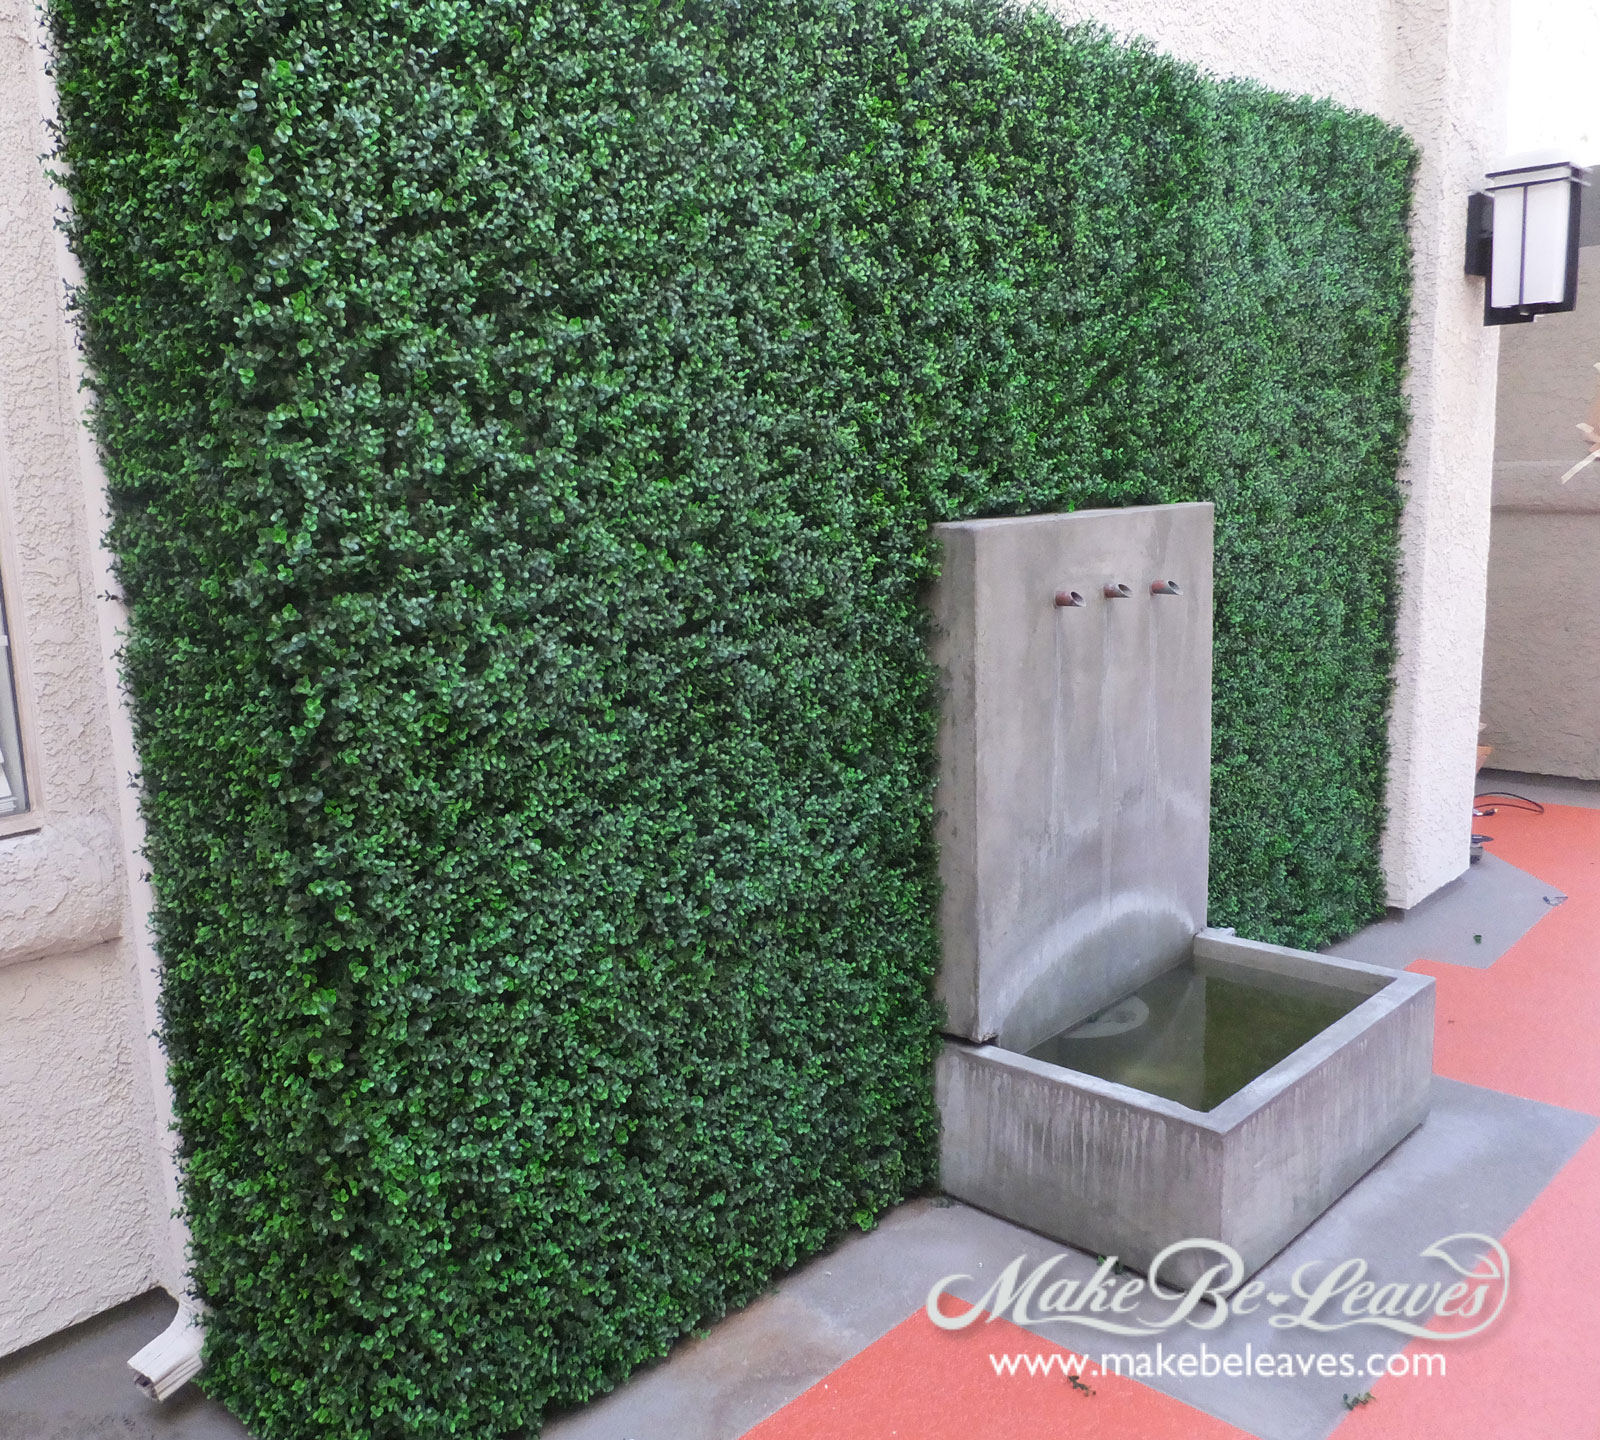 Make be-leaves UV-for-Hollywood-apartment-courtyard